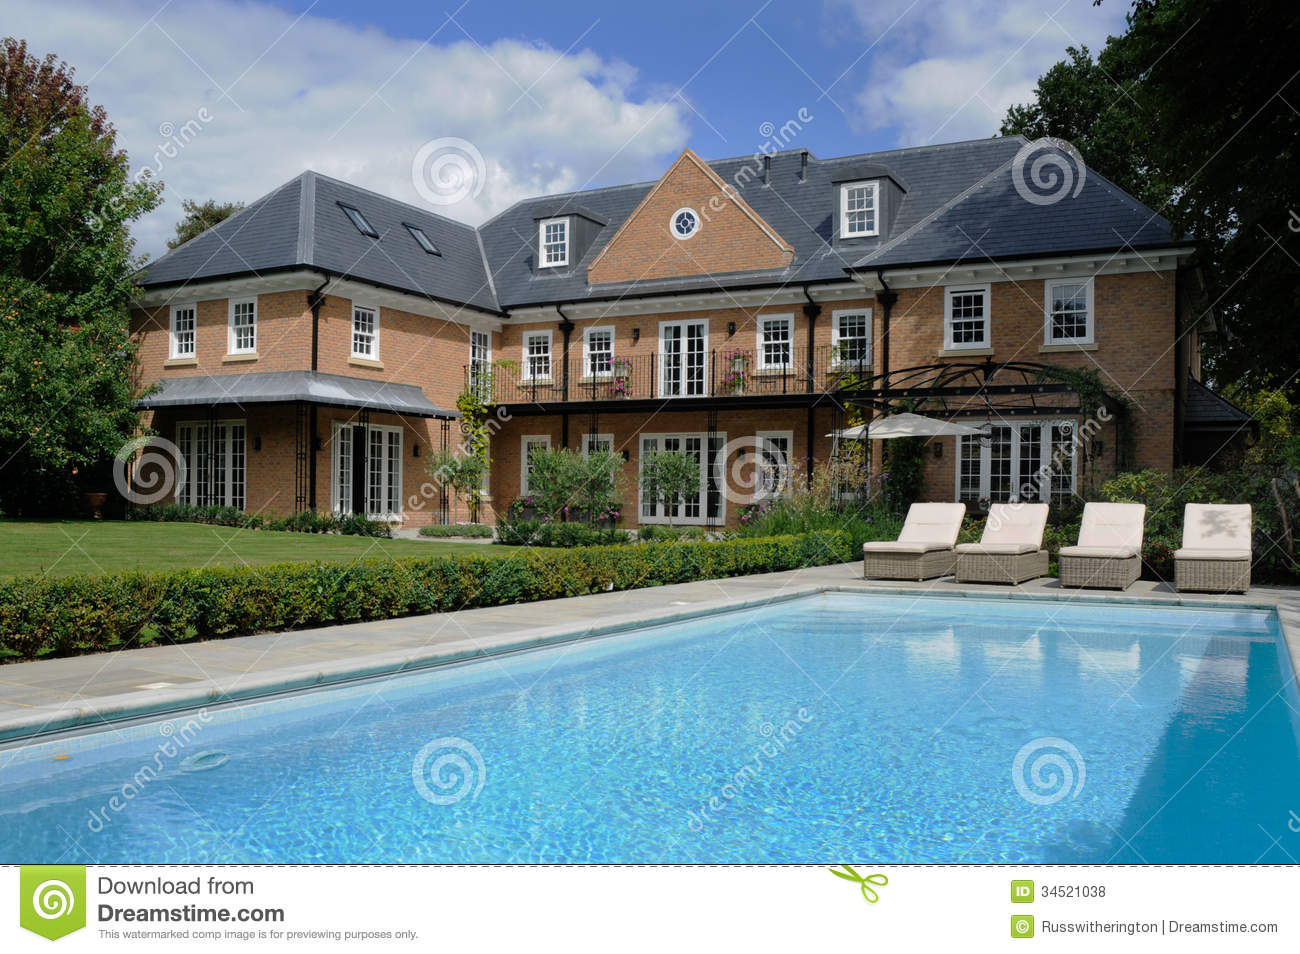 Likewise Fredsbighouses Weebly On Big Houses With Swimming Pools